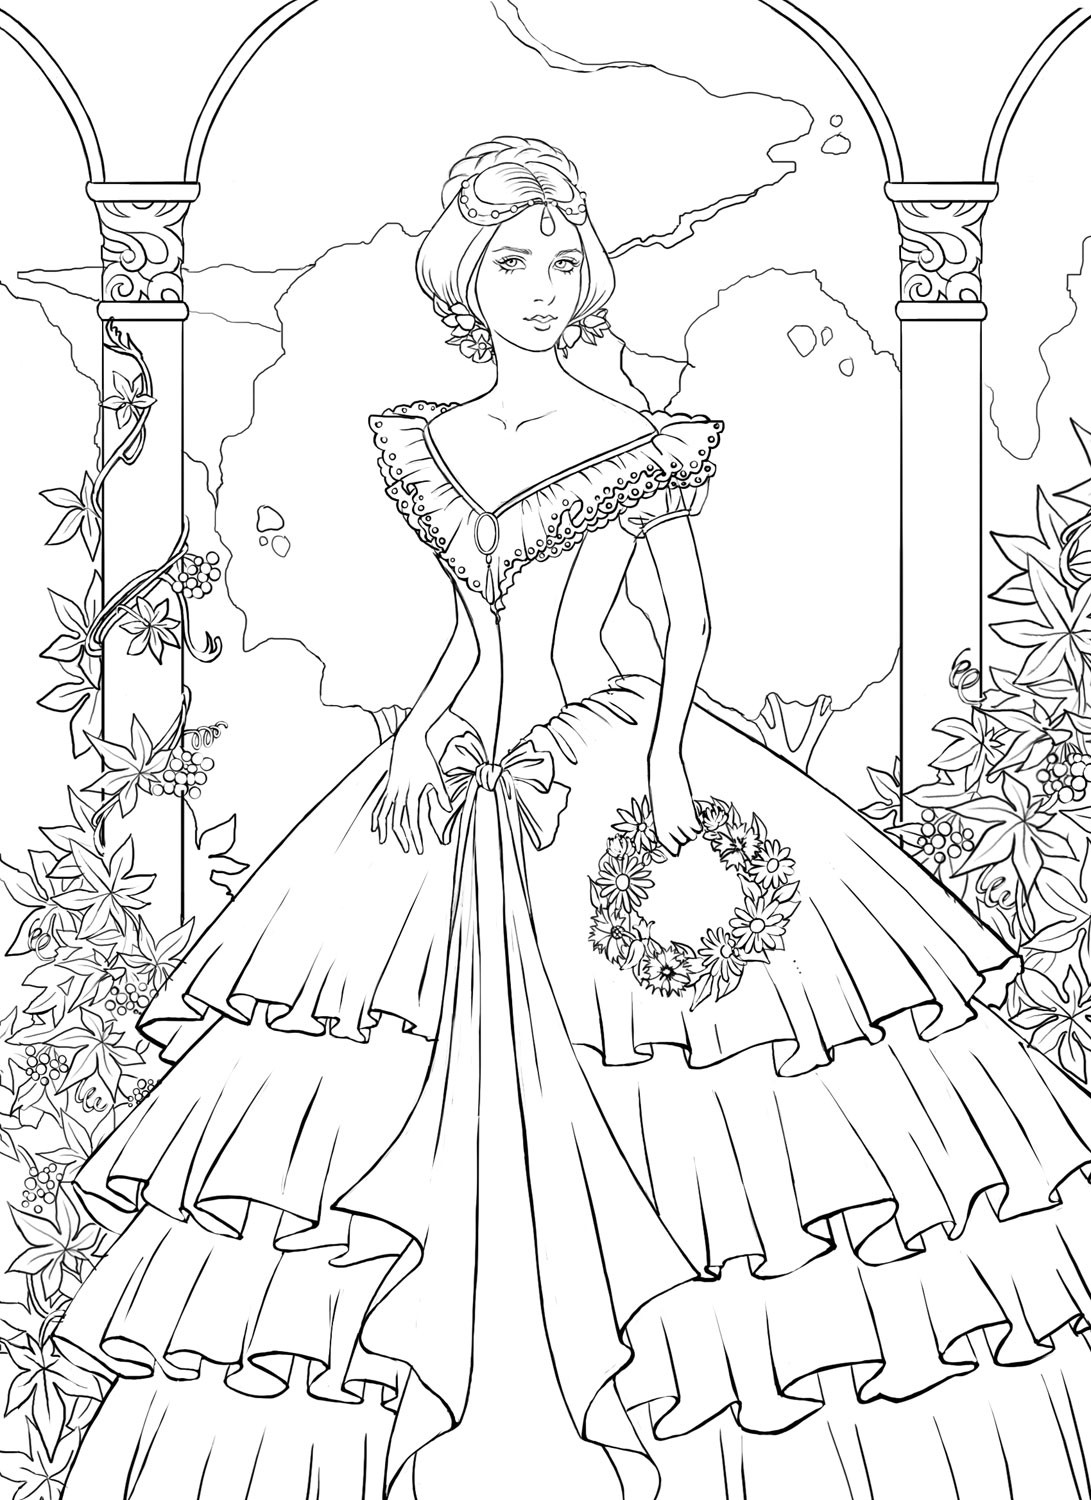 Best ideas about Coloring Pages For Girls Detailed . Save or Pin Very Detailed Coloring Pages Bestofcoloring Now.